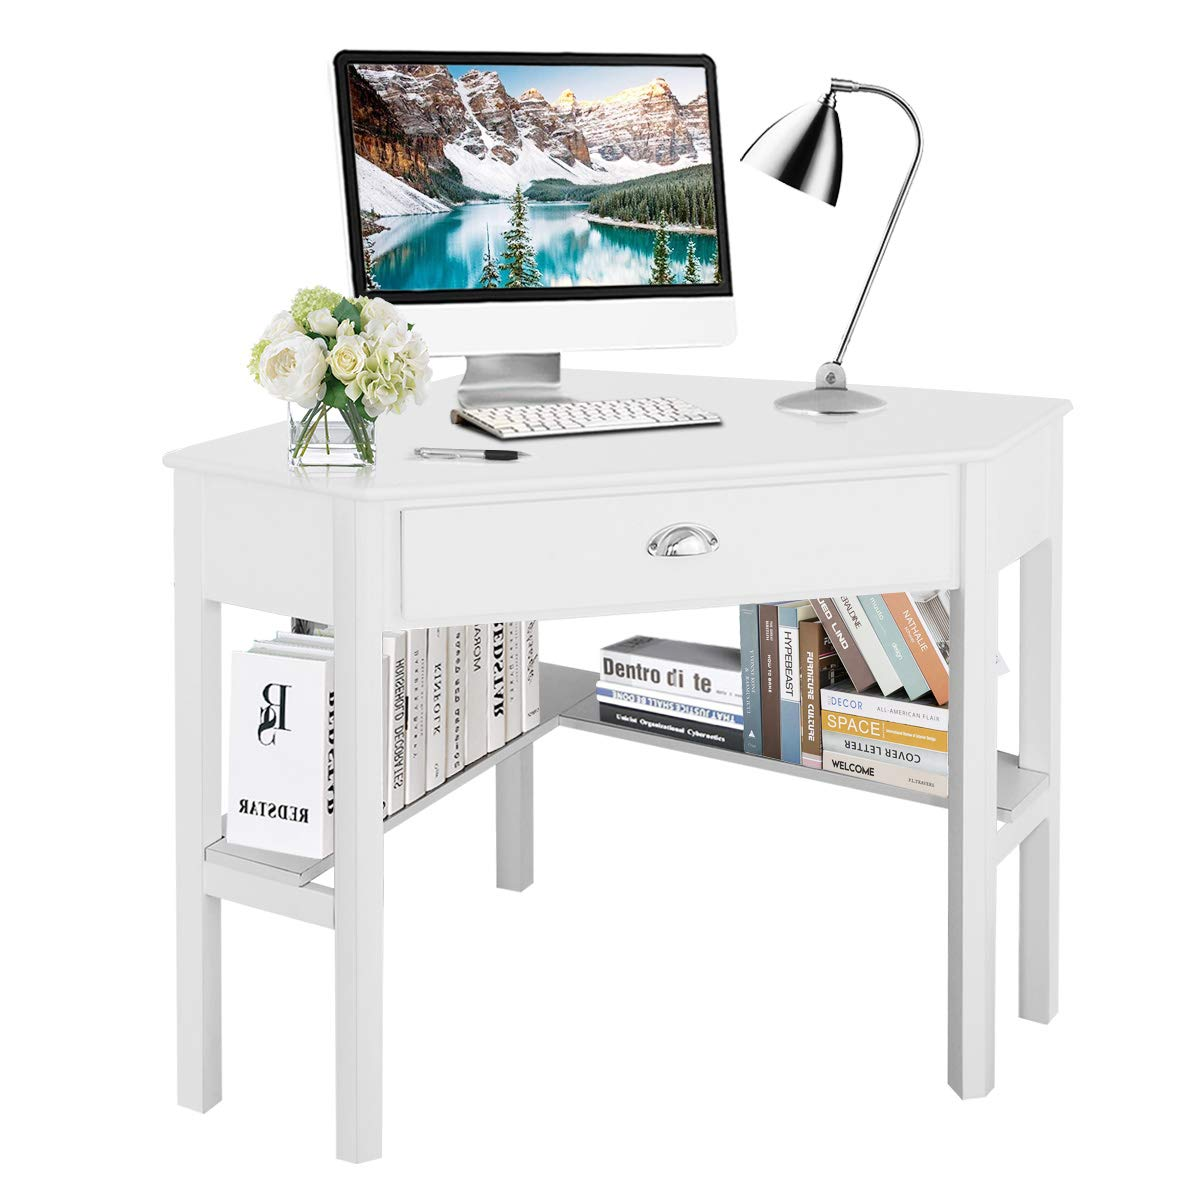 Tangkula Corner Desk, Corner Computer Desk, Wood Compact Home Office Desk, Laptop PC Table Writing Study Table, Workstation with Storage Drawer & Shelves by Tangkula